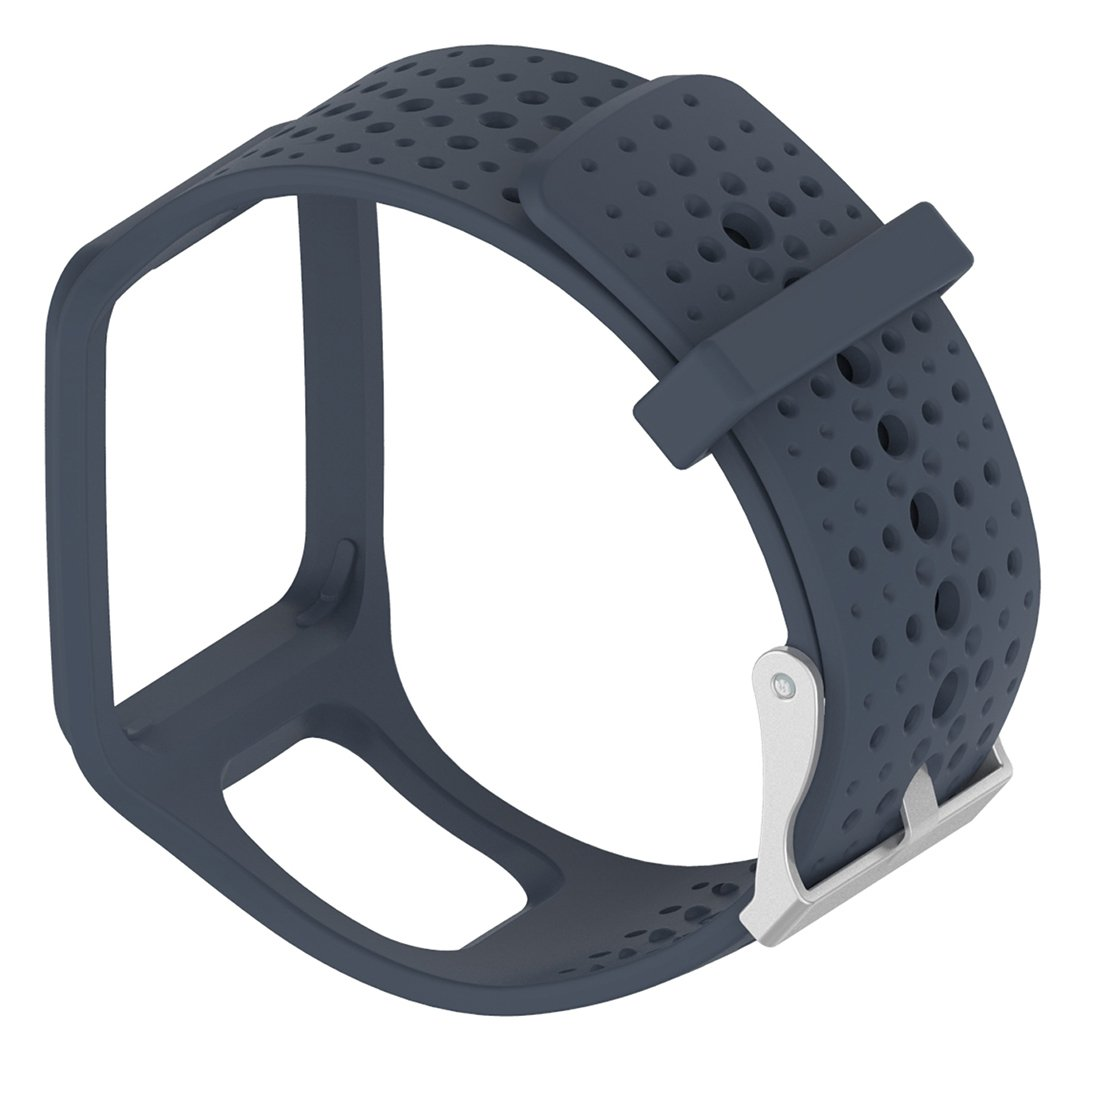 Lokeke Bracelet de rechange pour montre connectée TomTom Multi-Sport GPS: Amazon.fr: High-tech